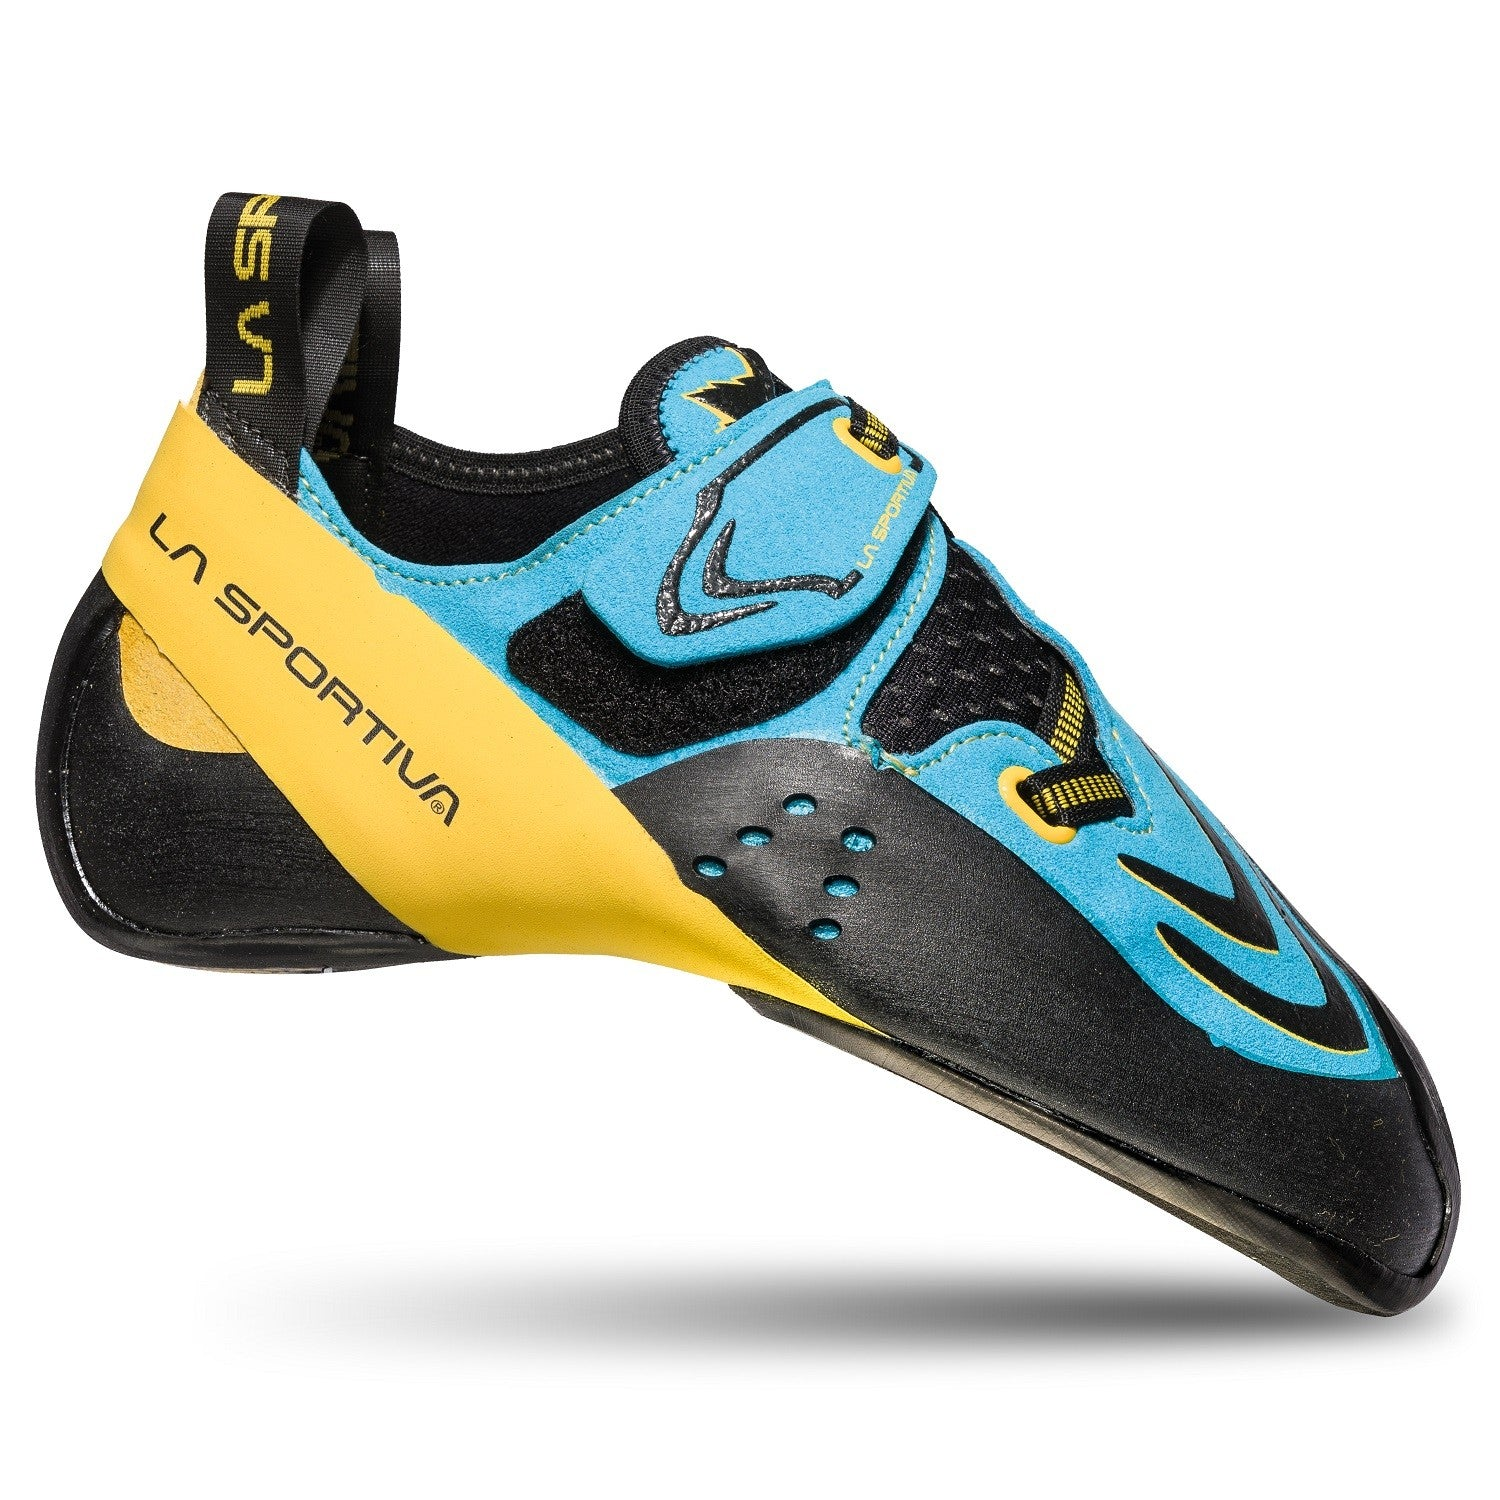 La Sportiva Futura in Blue & Yellow